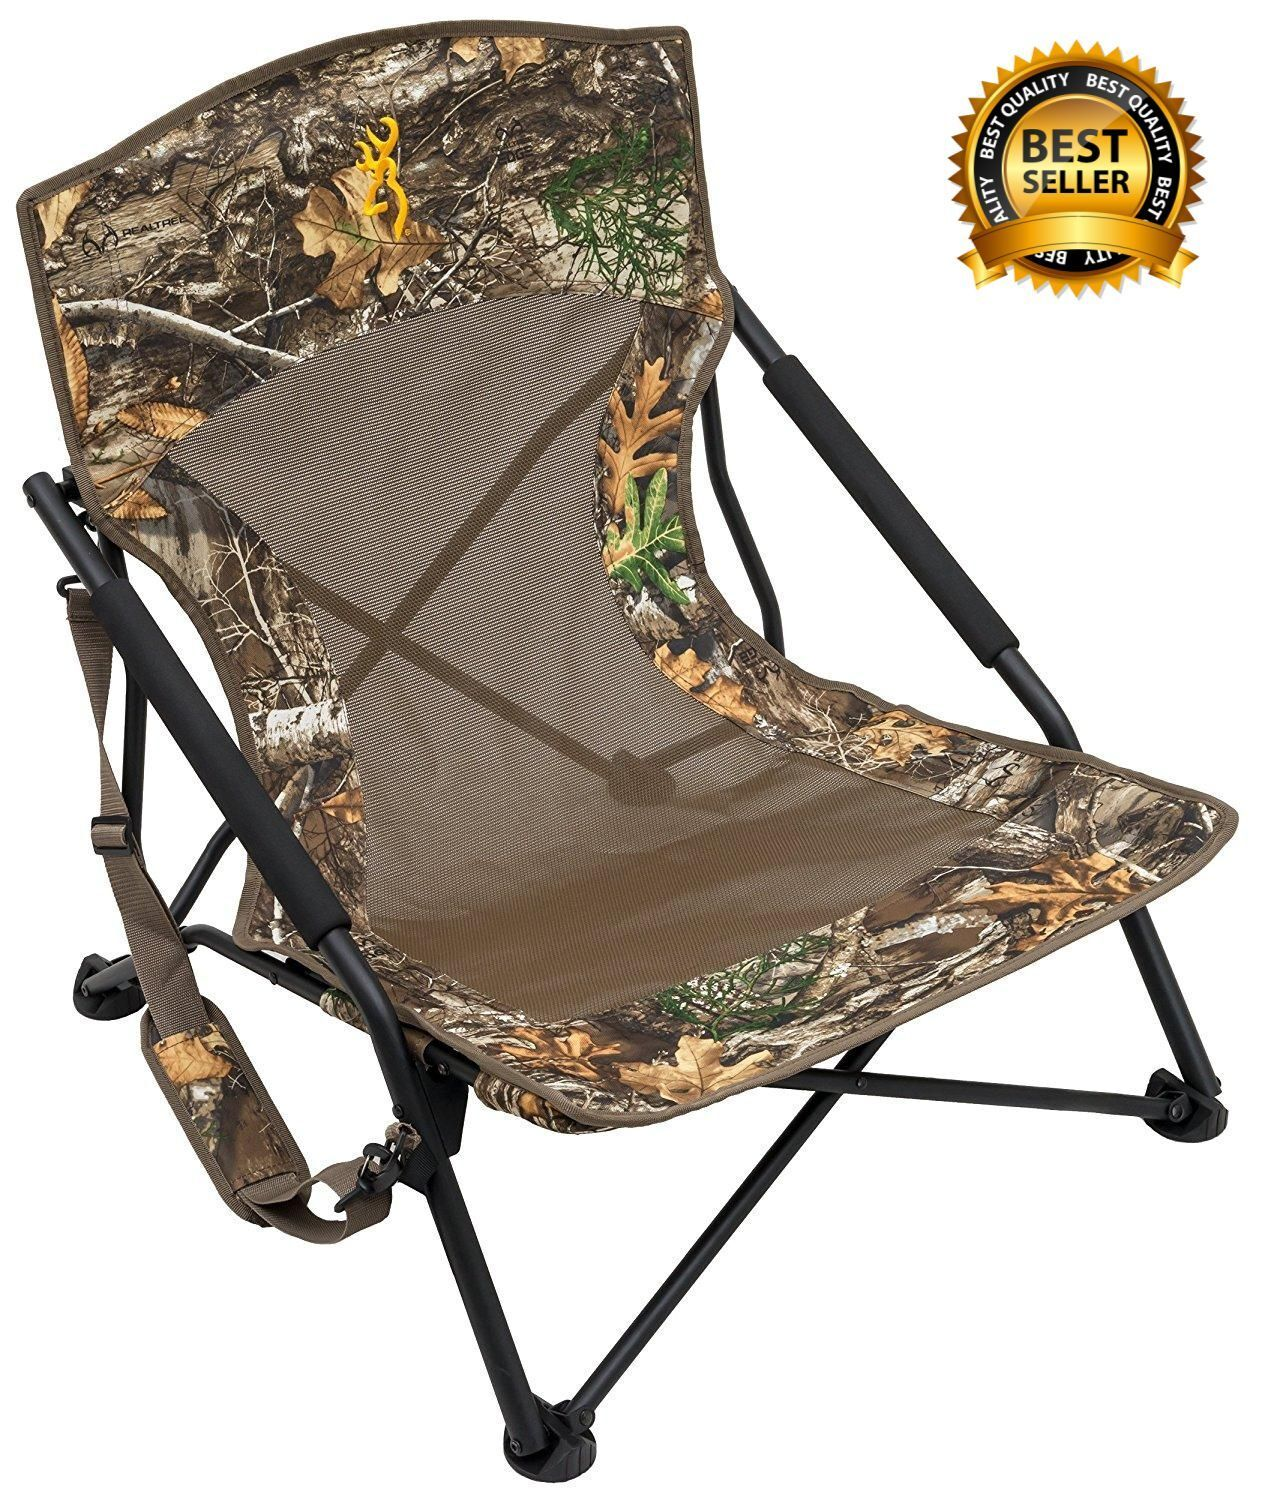 Folding Chair Outdoor Turkey Deer Hunting Camping Camouflage Stand Sit Chairs